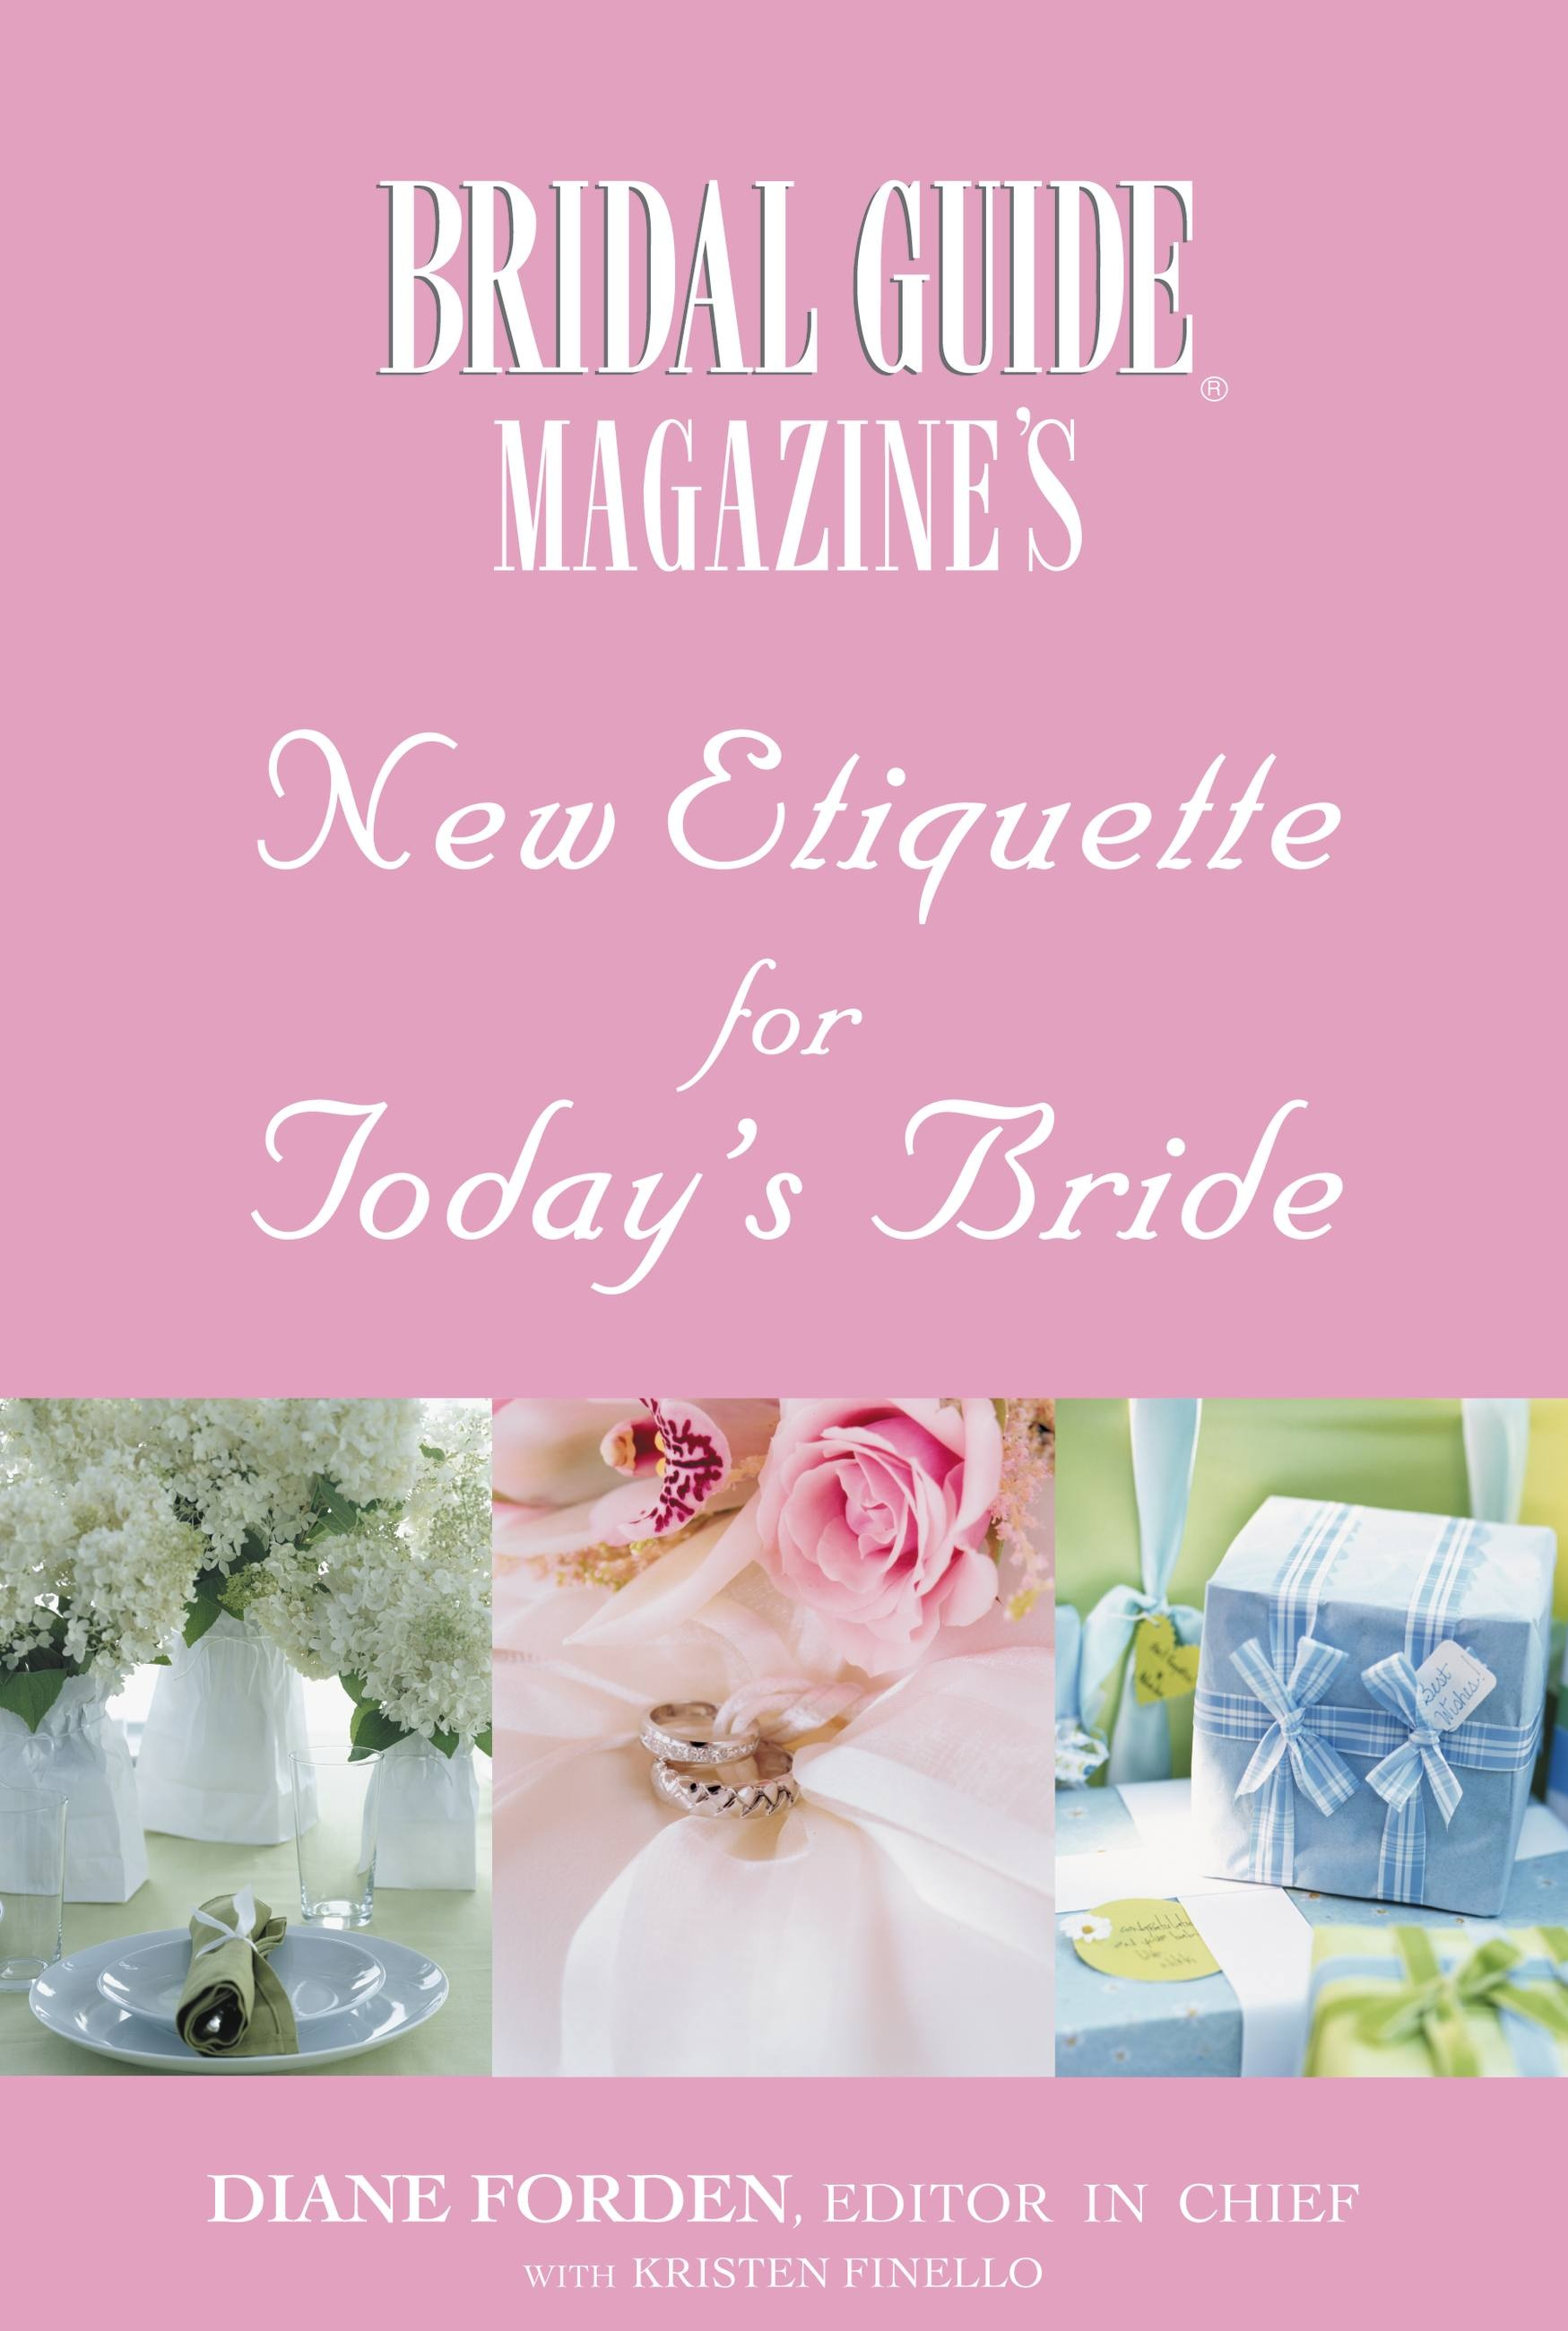 Bridal Guide (R) Magazine's New Etiquette for Today's Bride